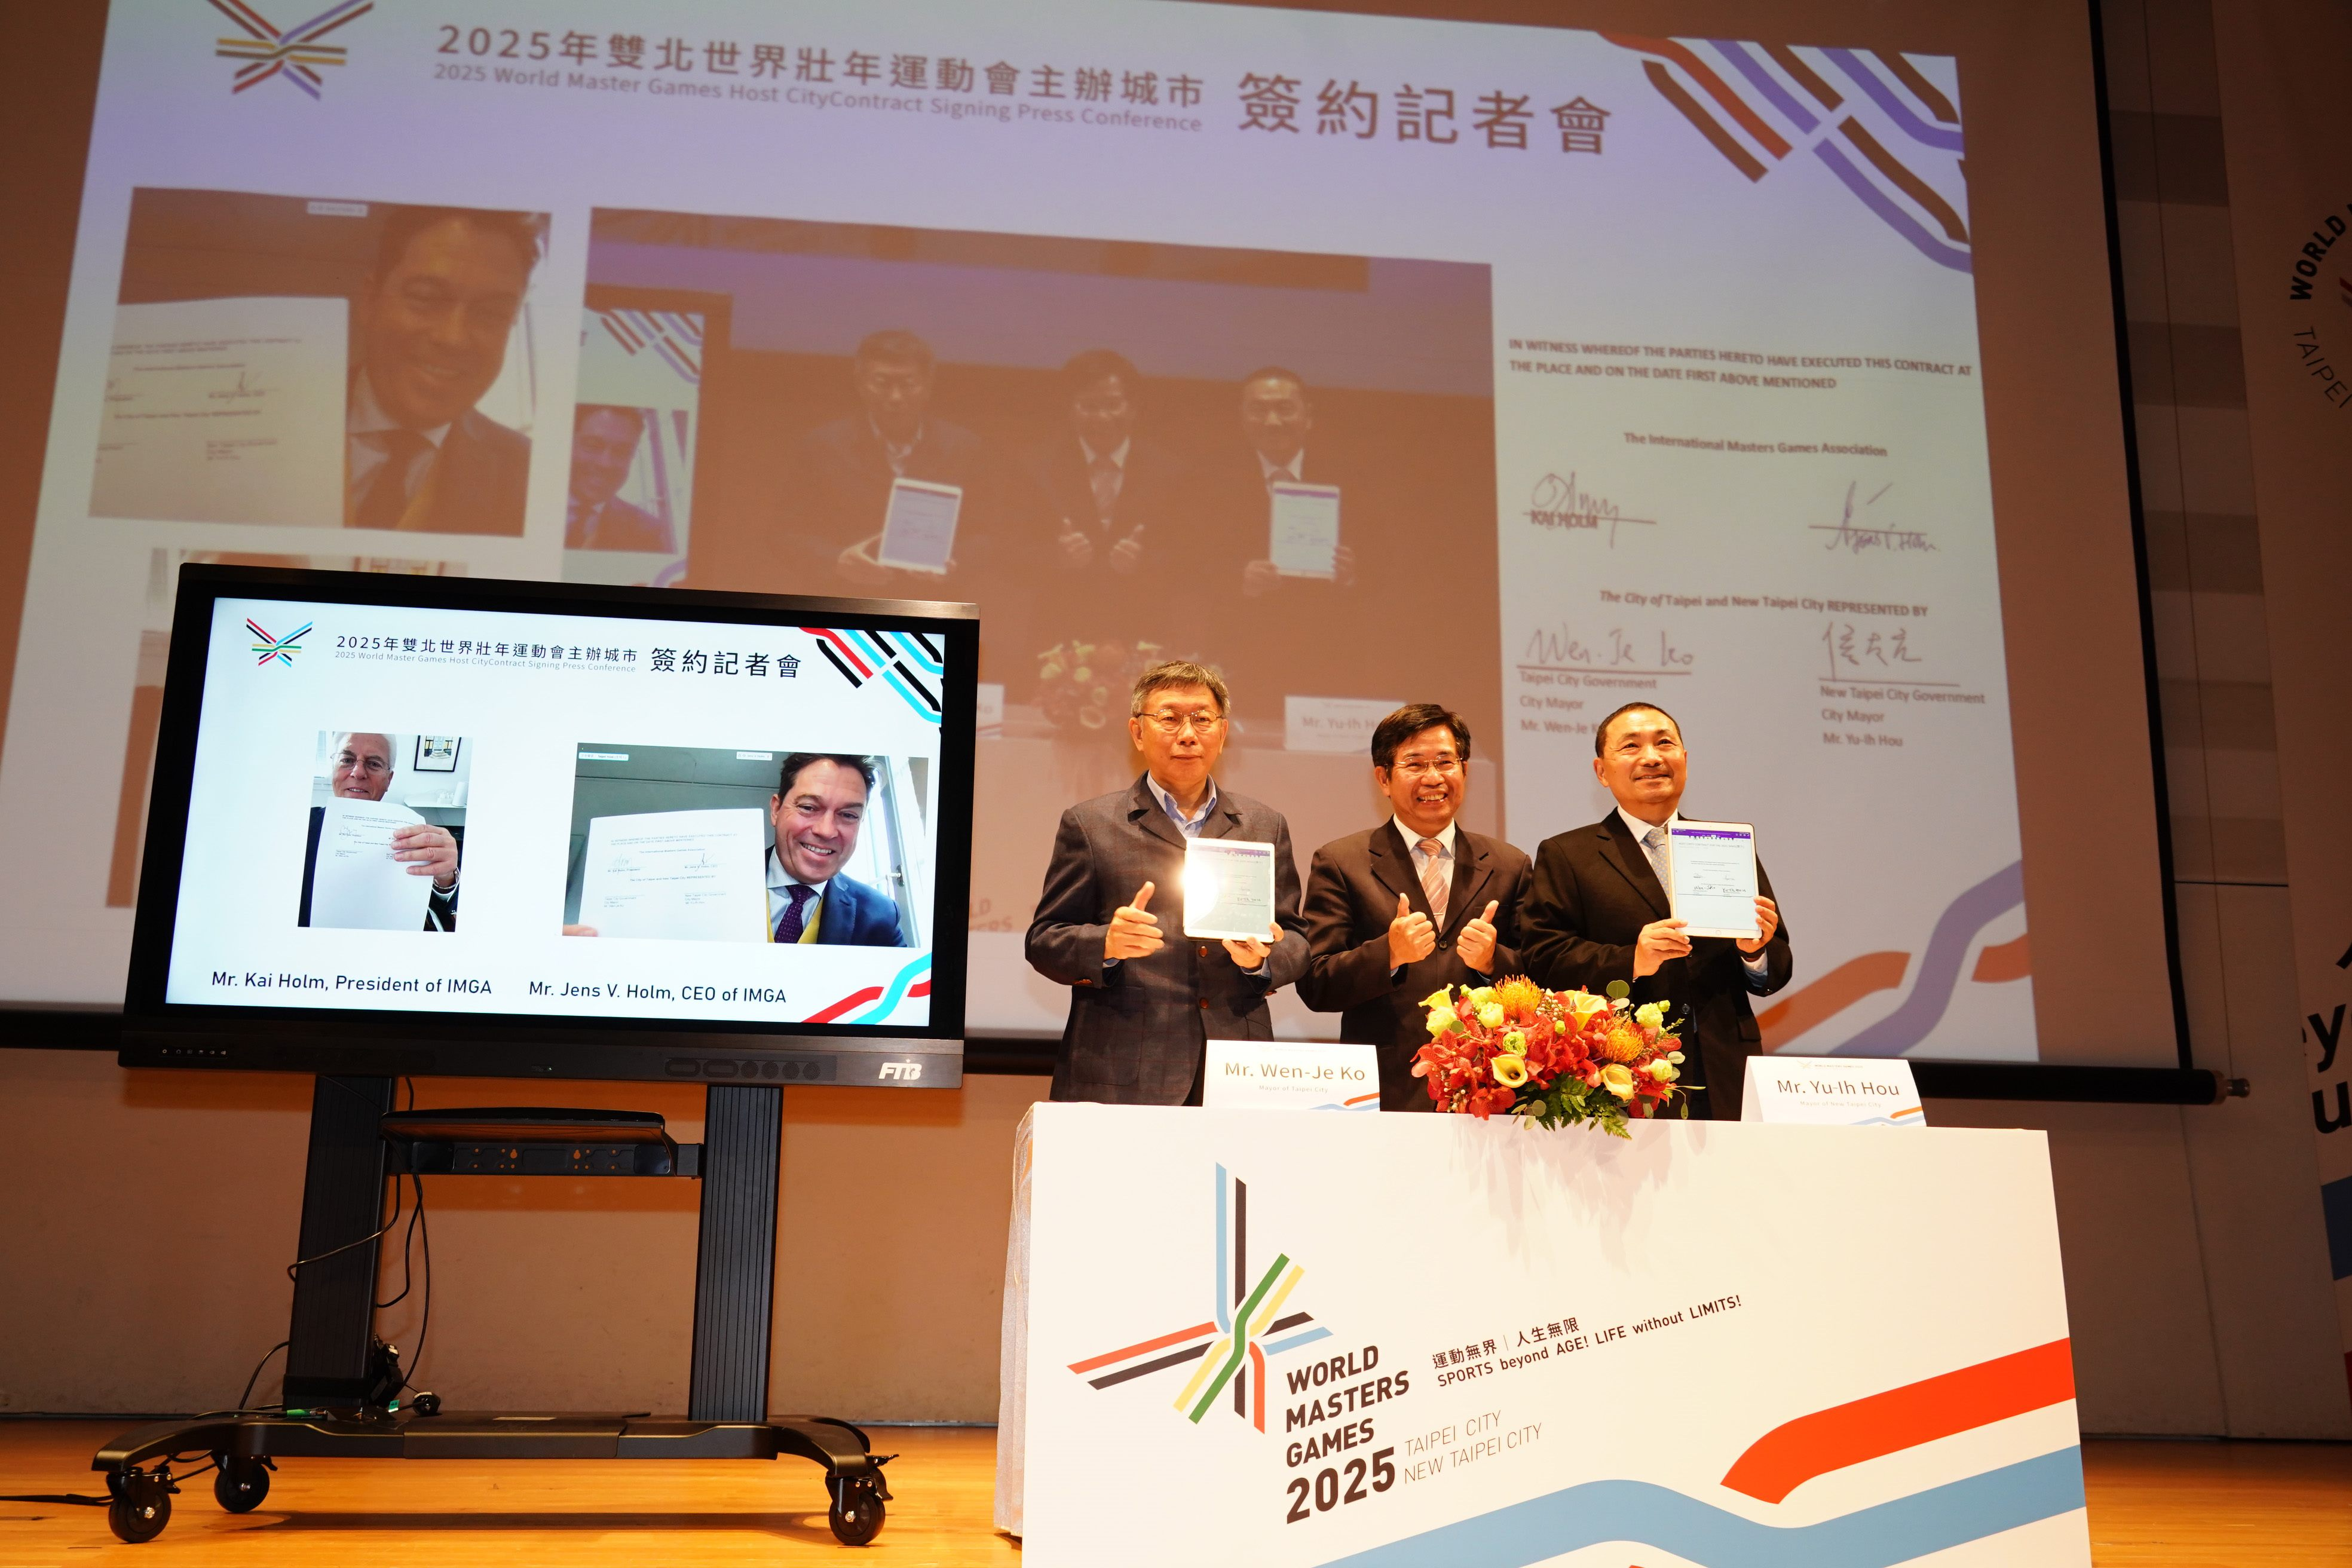 Mayor Ko and Mayor Hou at the signing ceremony for the 2025 World Masters Games